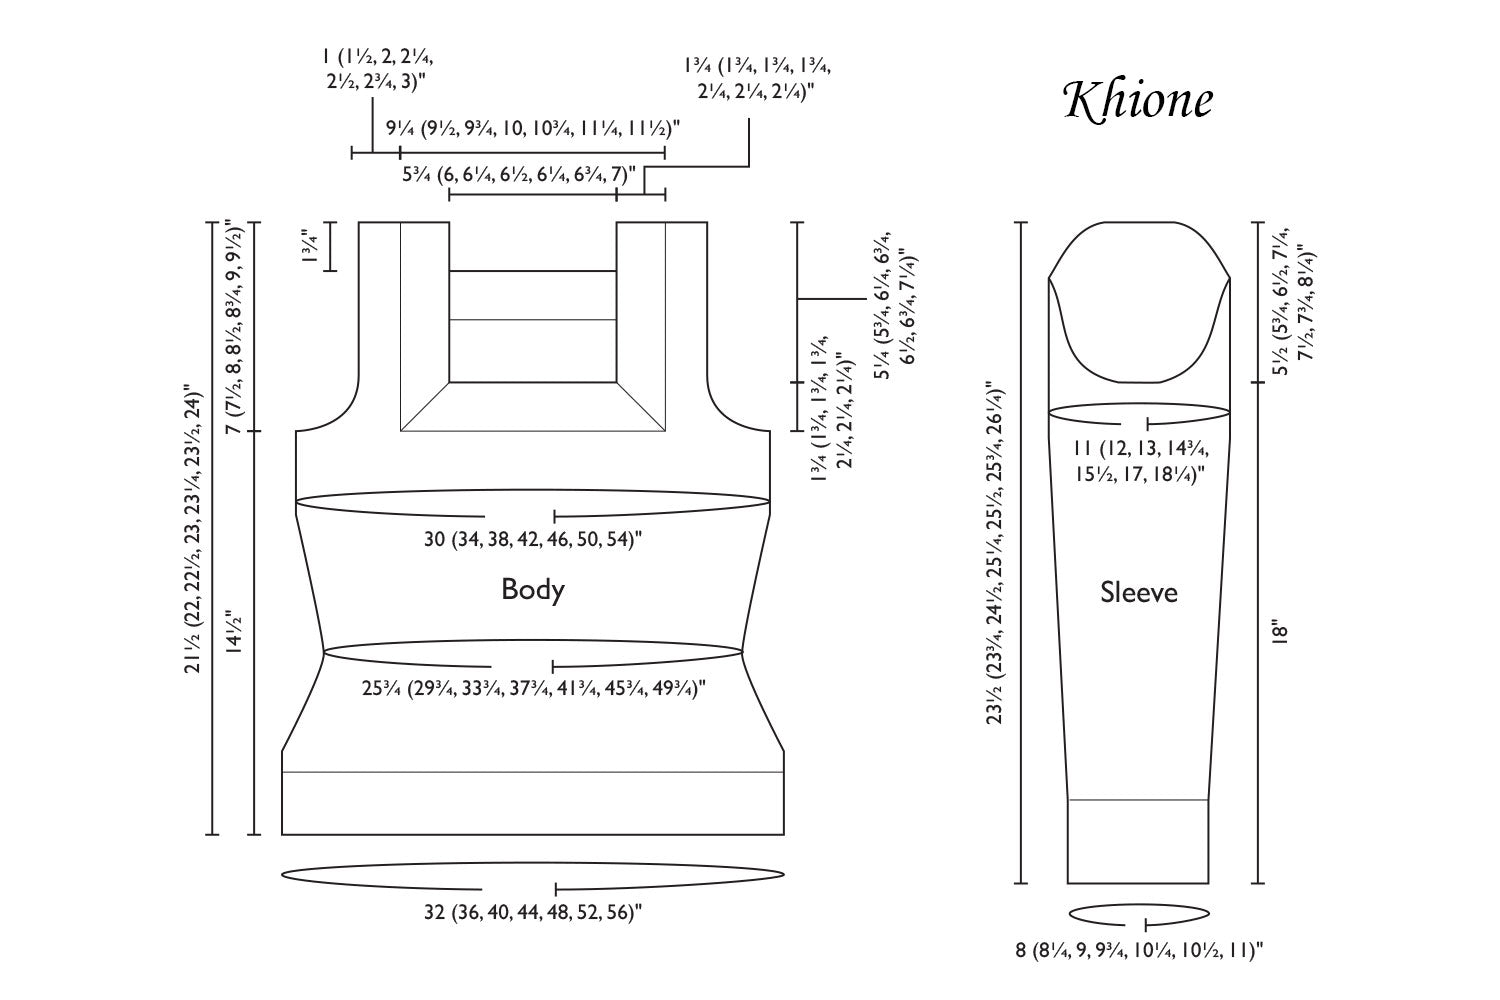 Detailed schematic line drawing with dimensions for Khione sweater